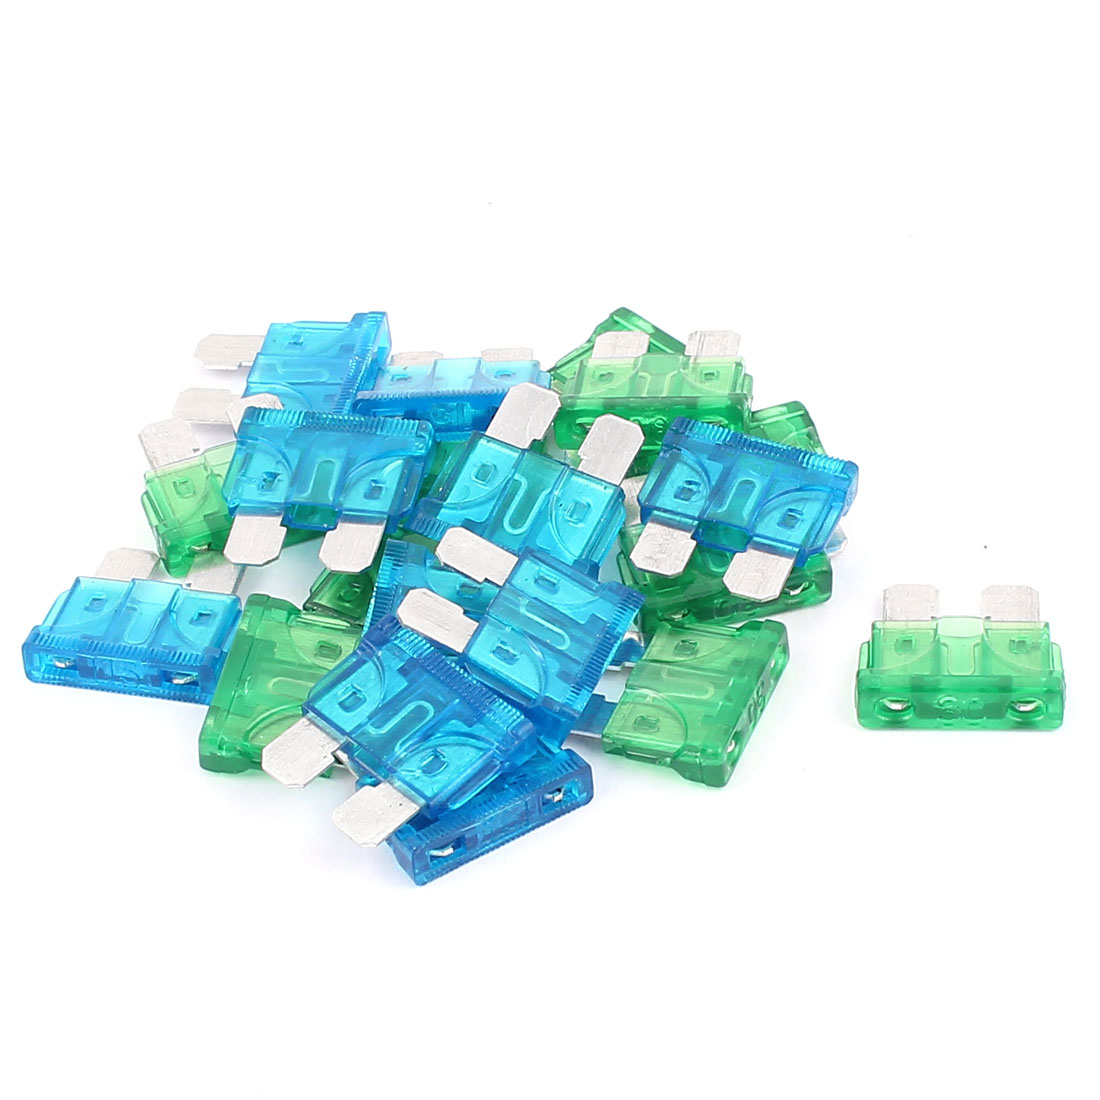 20pcs Motorbike Auto Car Vehicle Truck Boat ATC ATO Mini Blade Fuses 15A 30A Blue Green